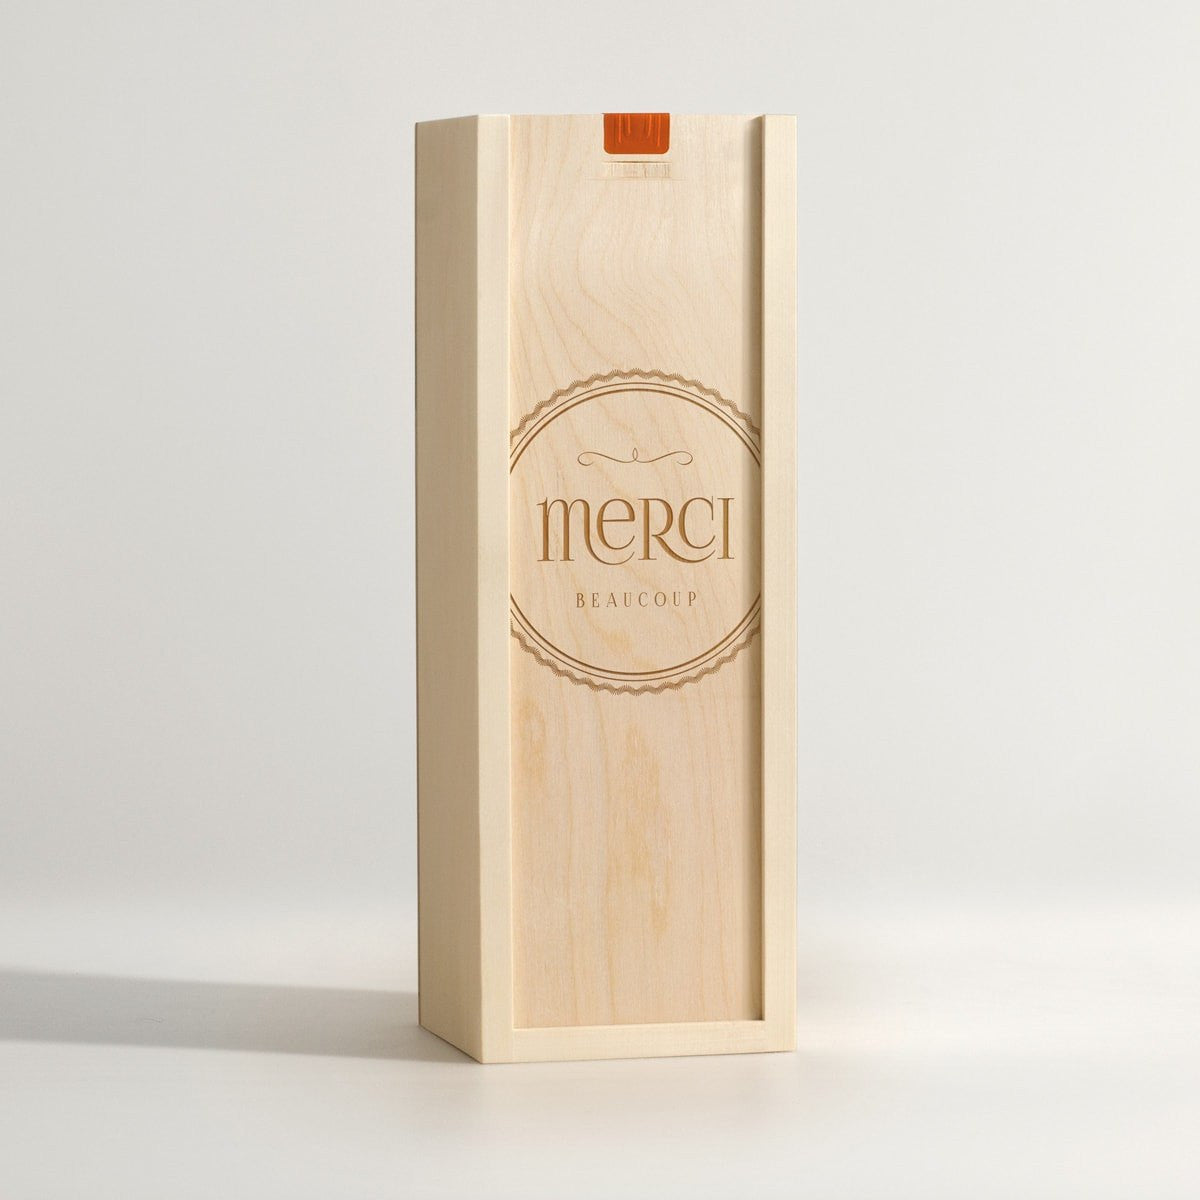 Merci Beaucoup - Wine Box - Main Image